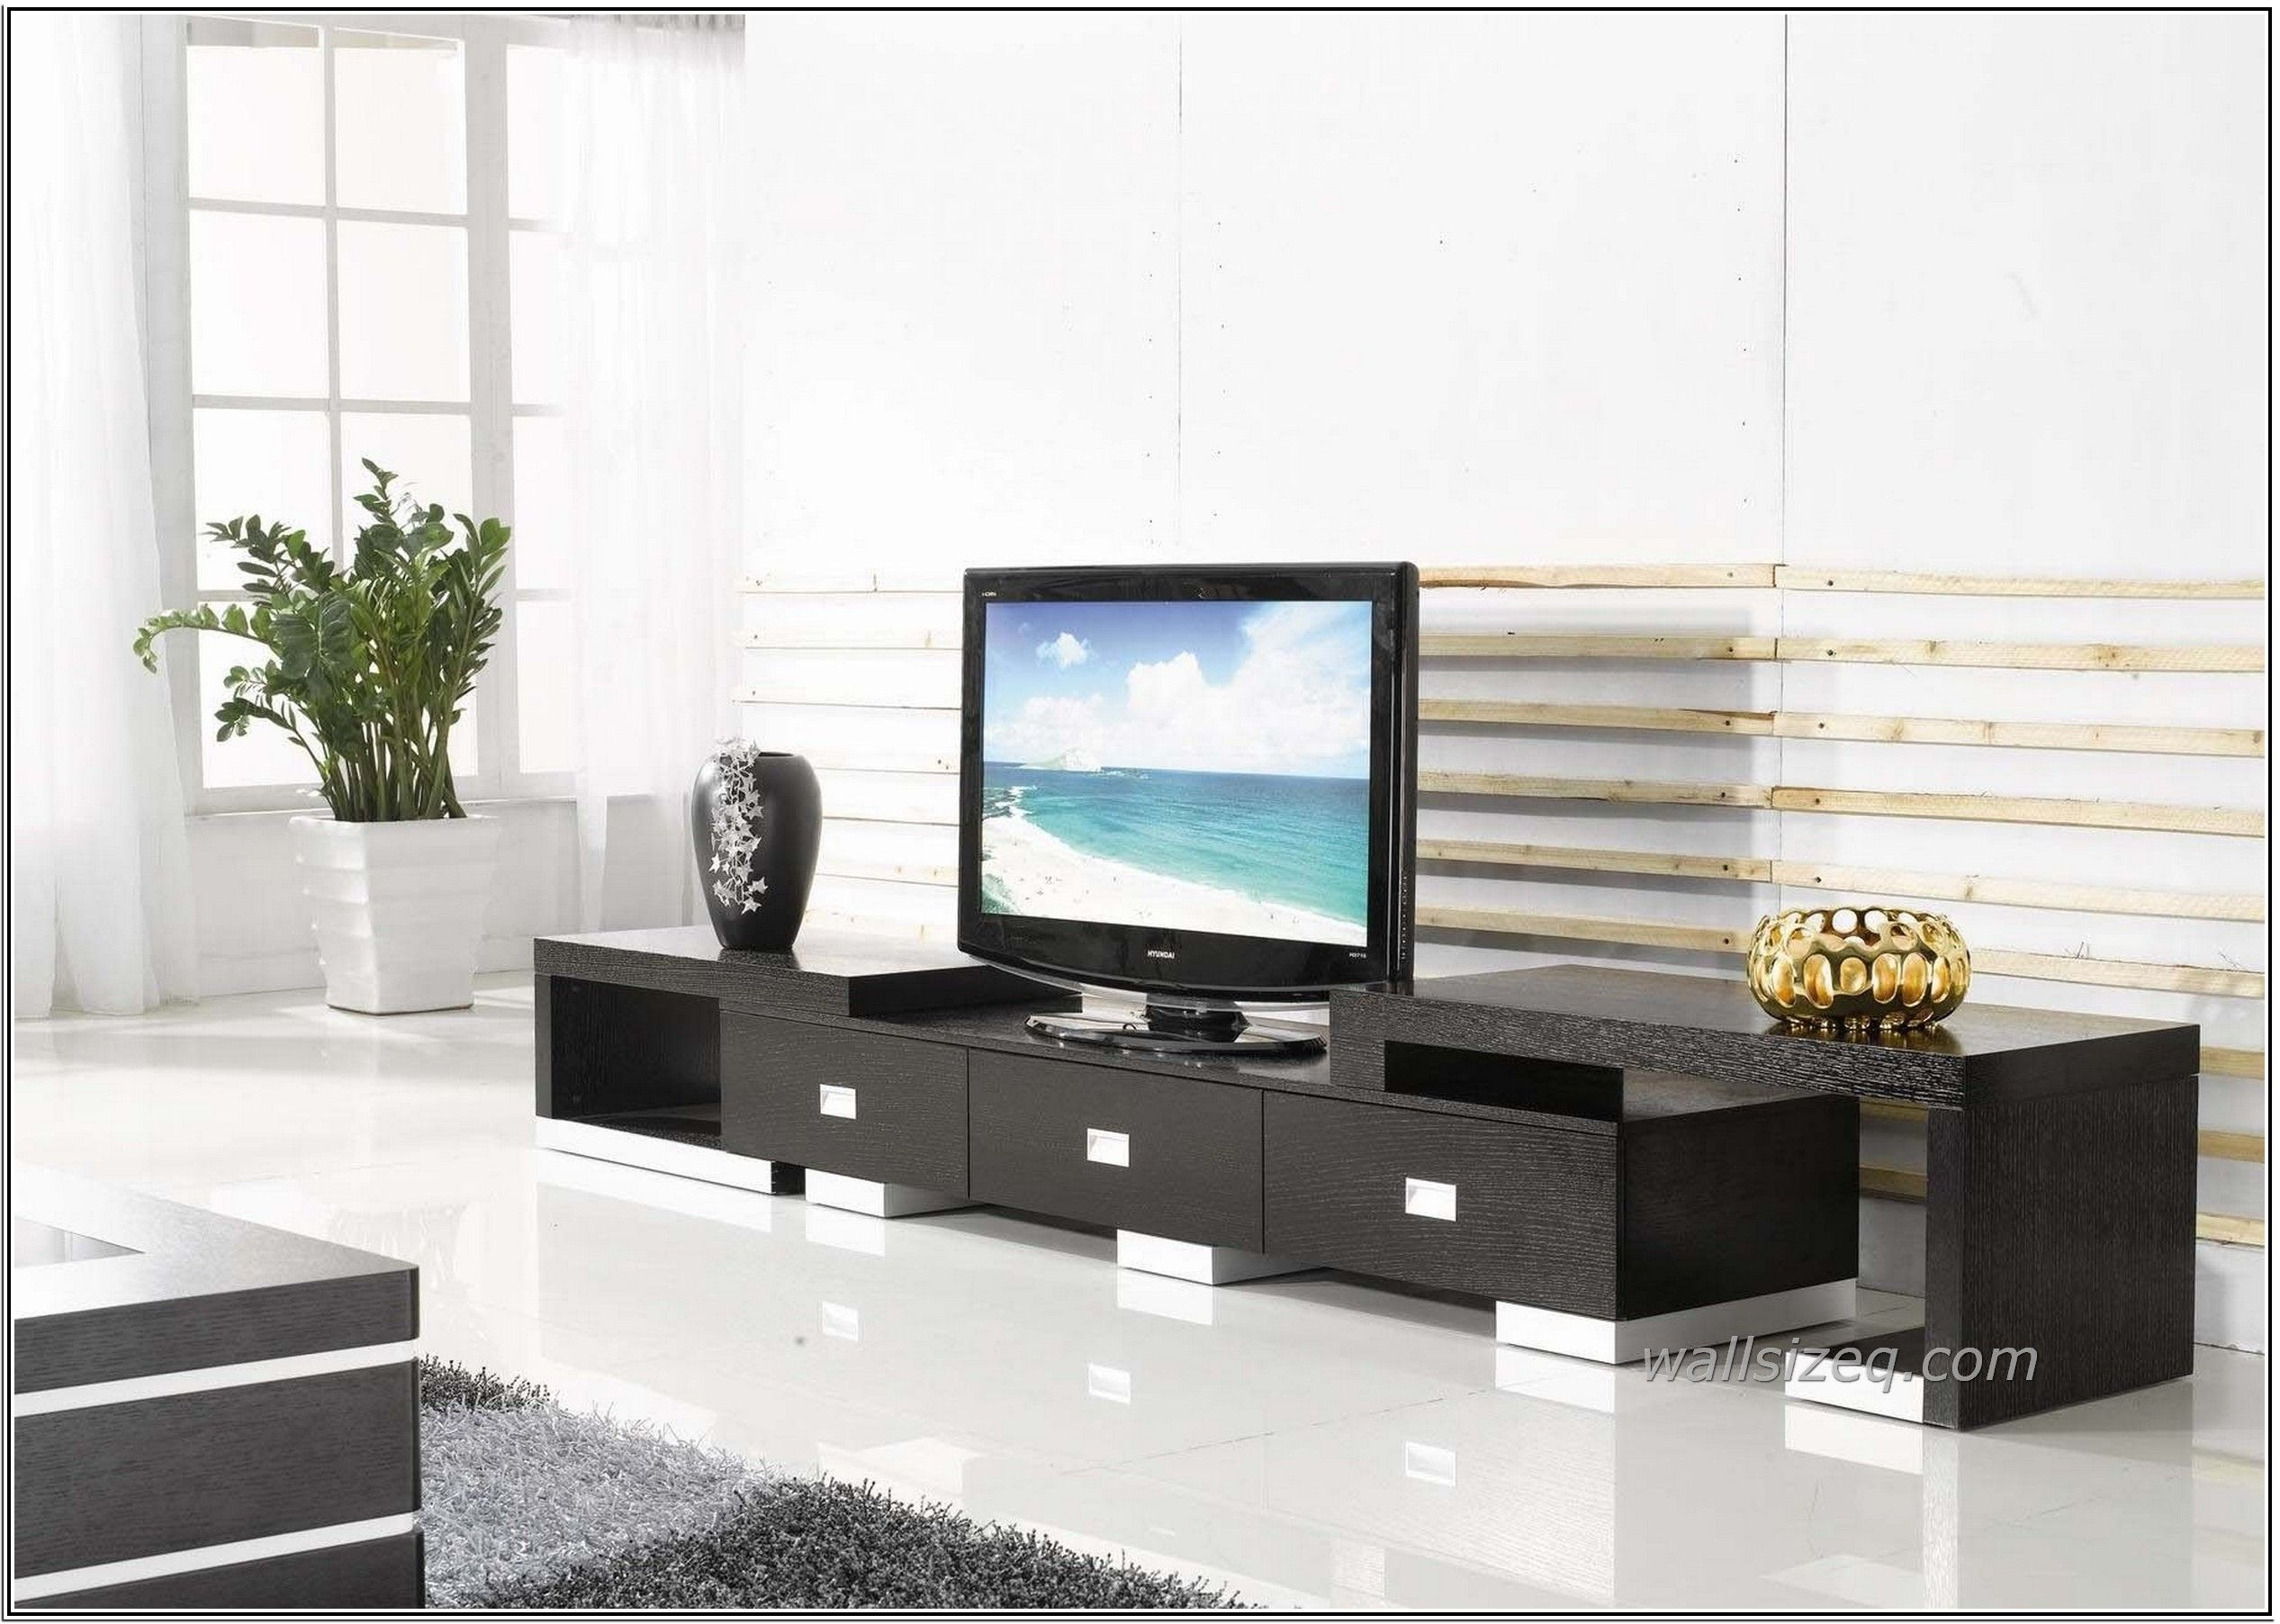 Tv cabinet tv wall unit tv stand with led s modern living room - Find This Pin And More On Interior Design Furniture Remarkable Living Room Furniture Tv With Tv Cabinet And Stylish Led